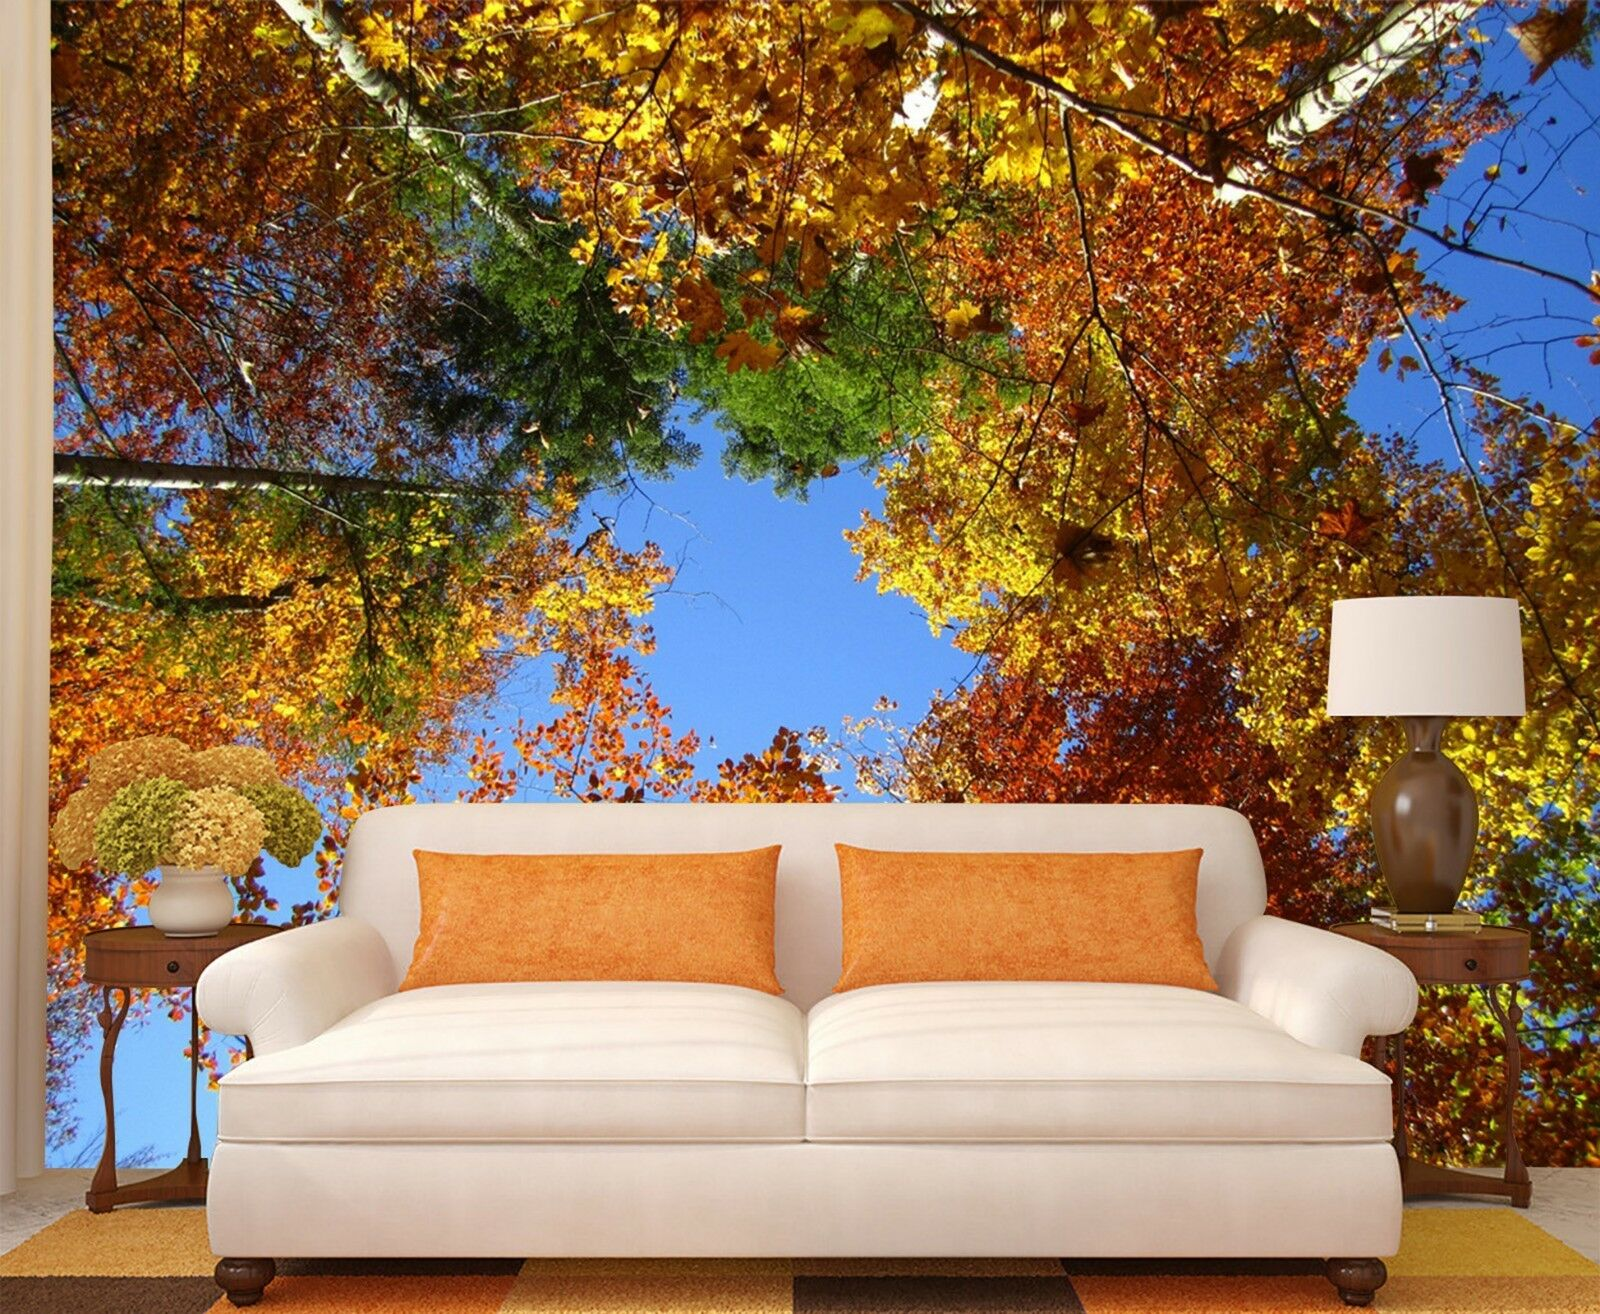 3D Leaves sky Wall Paper Print Decal Wall Deco Indoor wall Mural